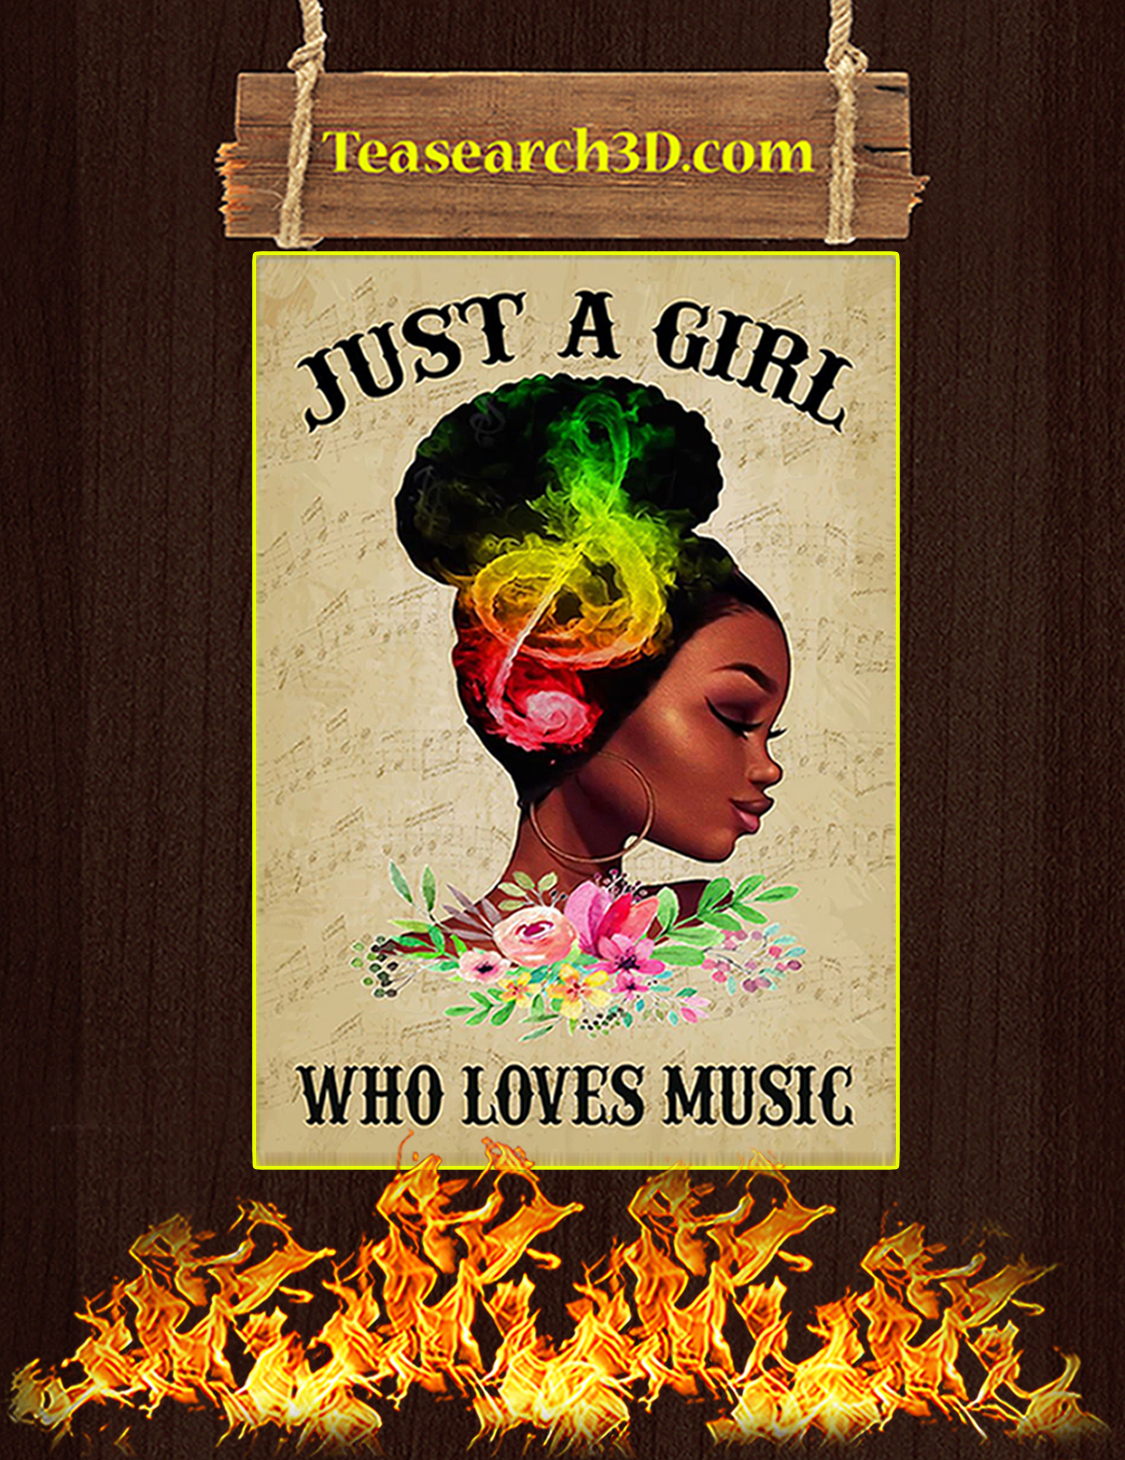 Just a girl who loves music poster A3